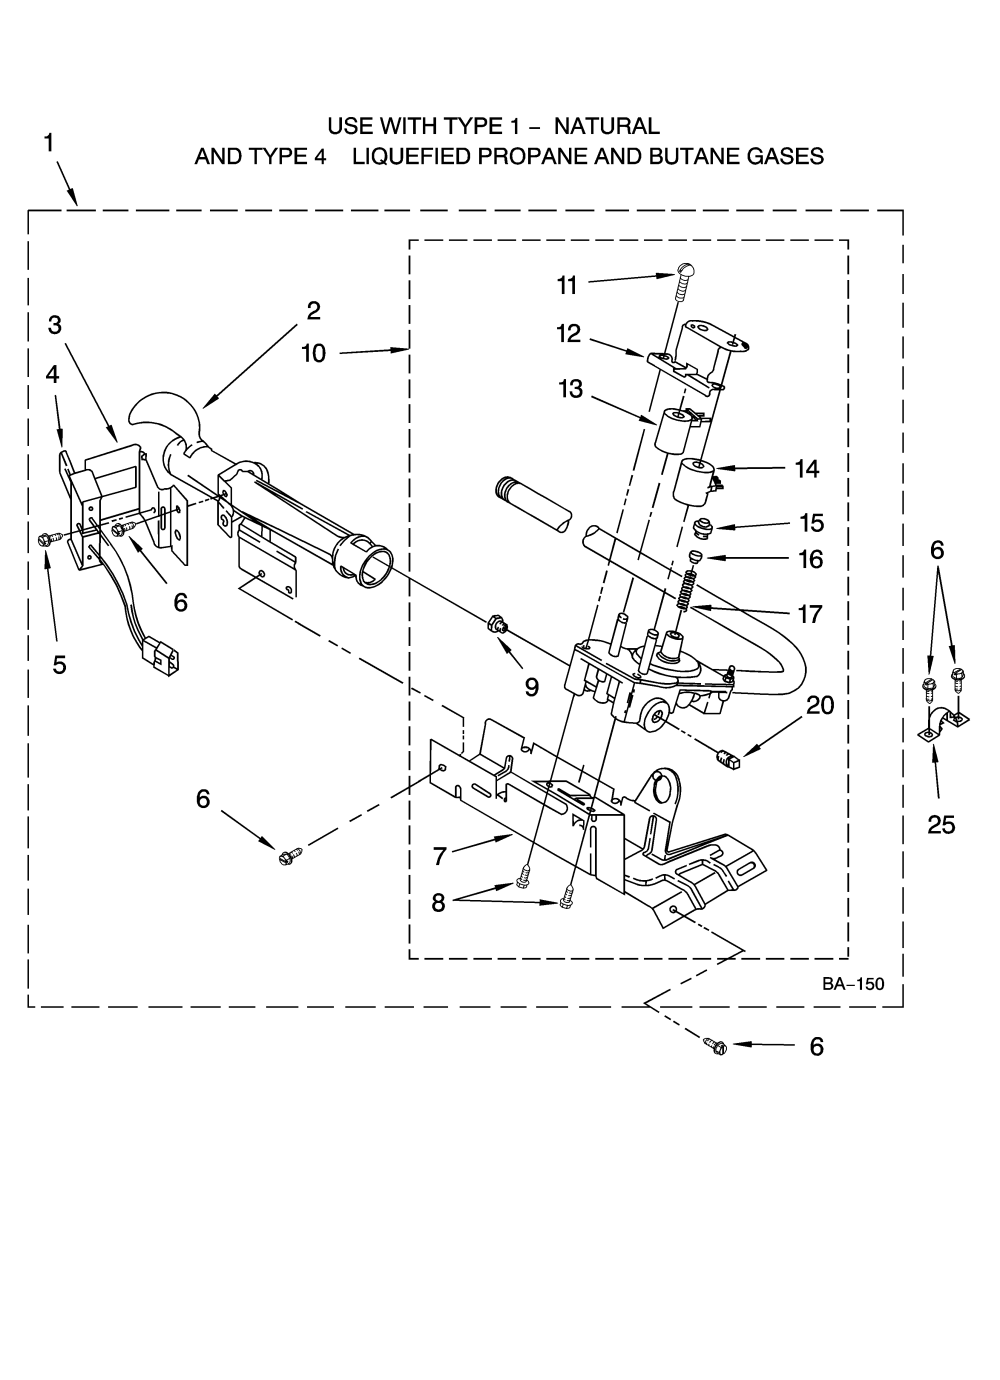 medium resolution of whirlpool wgd5100vq0 8318272 burner assembly optional parts not included diagram